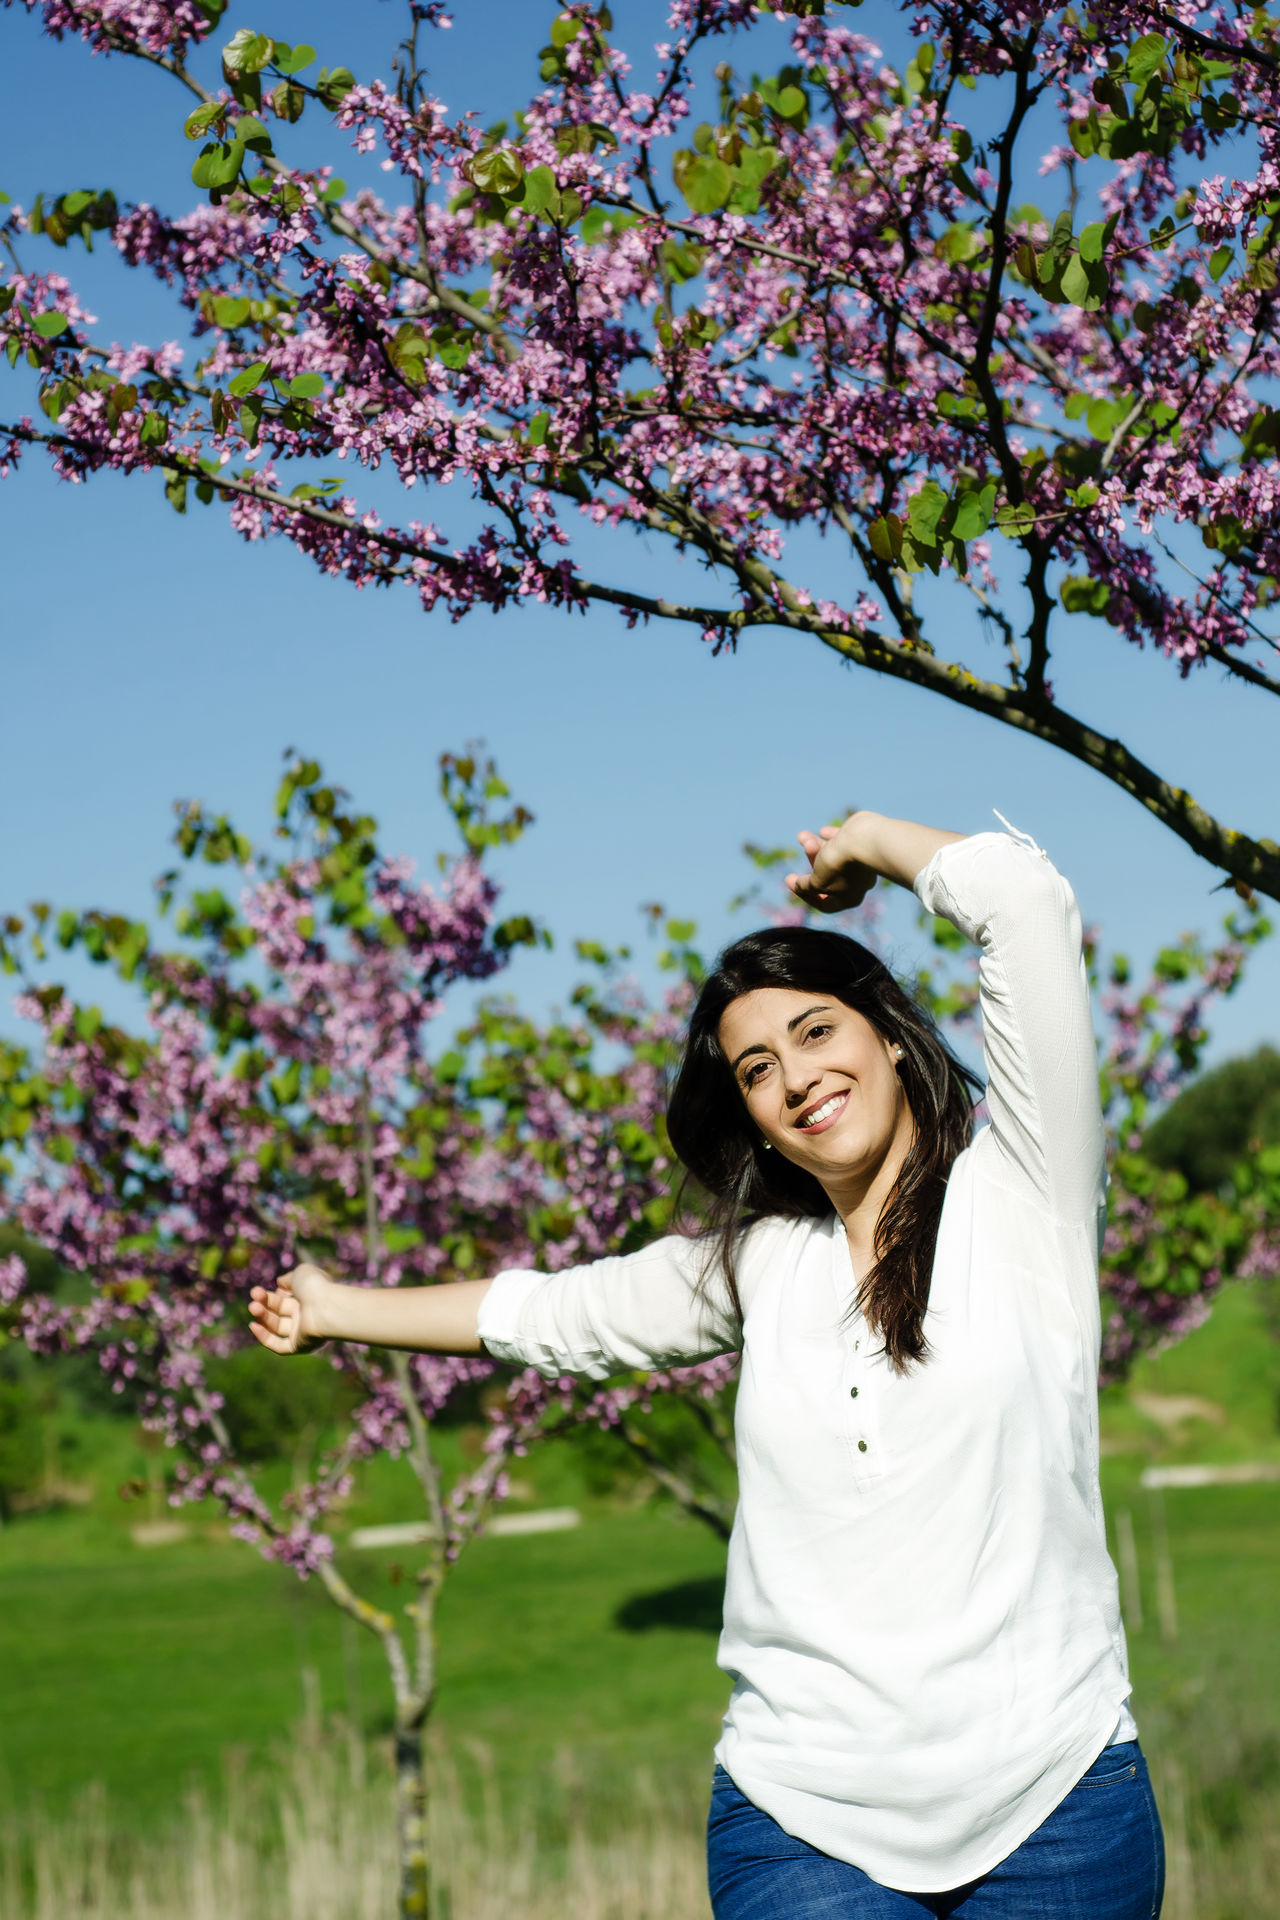 Woman happy with live, enjoy´s the spring the city park Arms Raised Beautiful Woman Beauty In Nature Branch Casual Clothing Cheerful Day Flower Fragility Freshness Front View Growth Happiness Leisure Activity Long Hair Nature One Person Outdoors Real People Smiling Springtime Standing Tree Young Adult Young Women